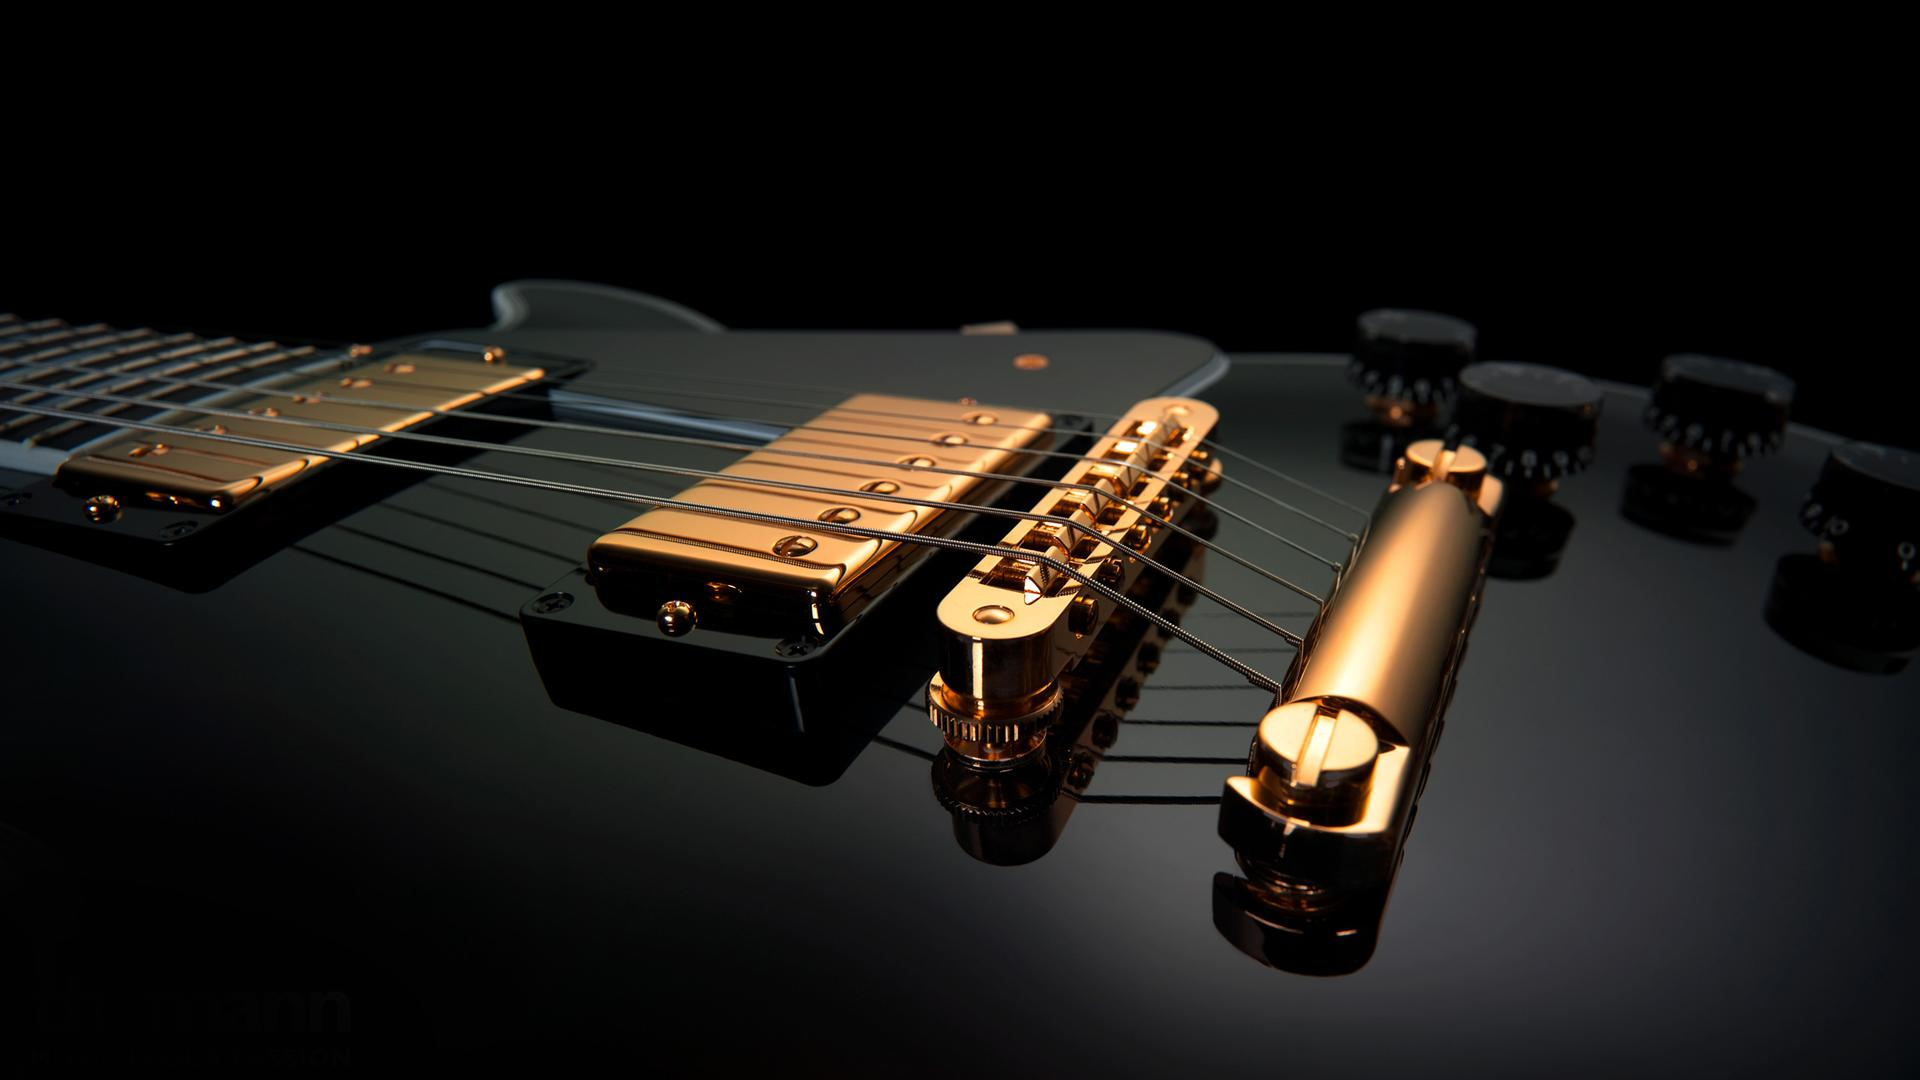 Hd Bass Guitar Wallpaper: Download Bass Guitar HD Wallpaper Gallery